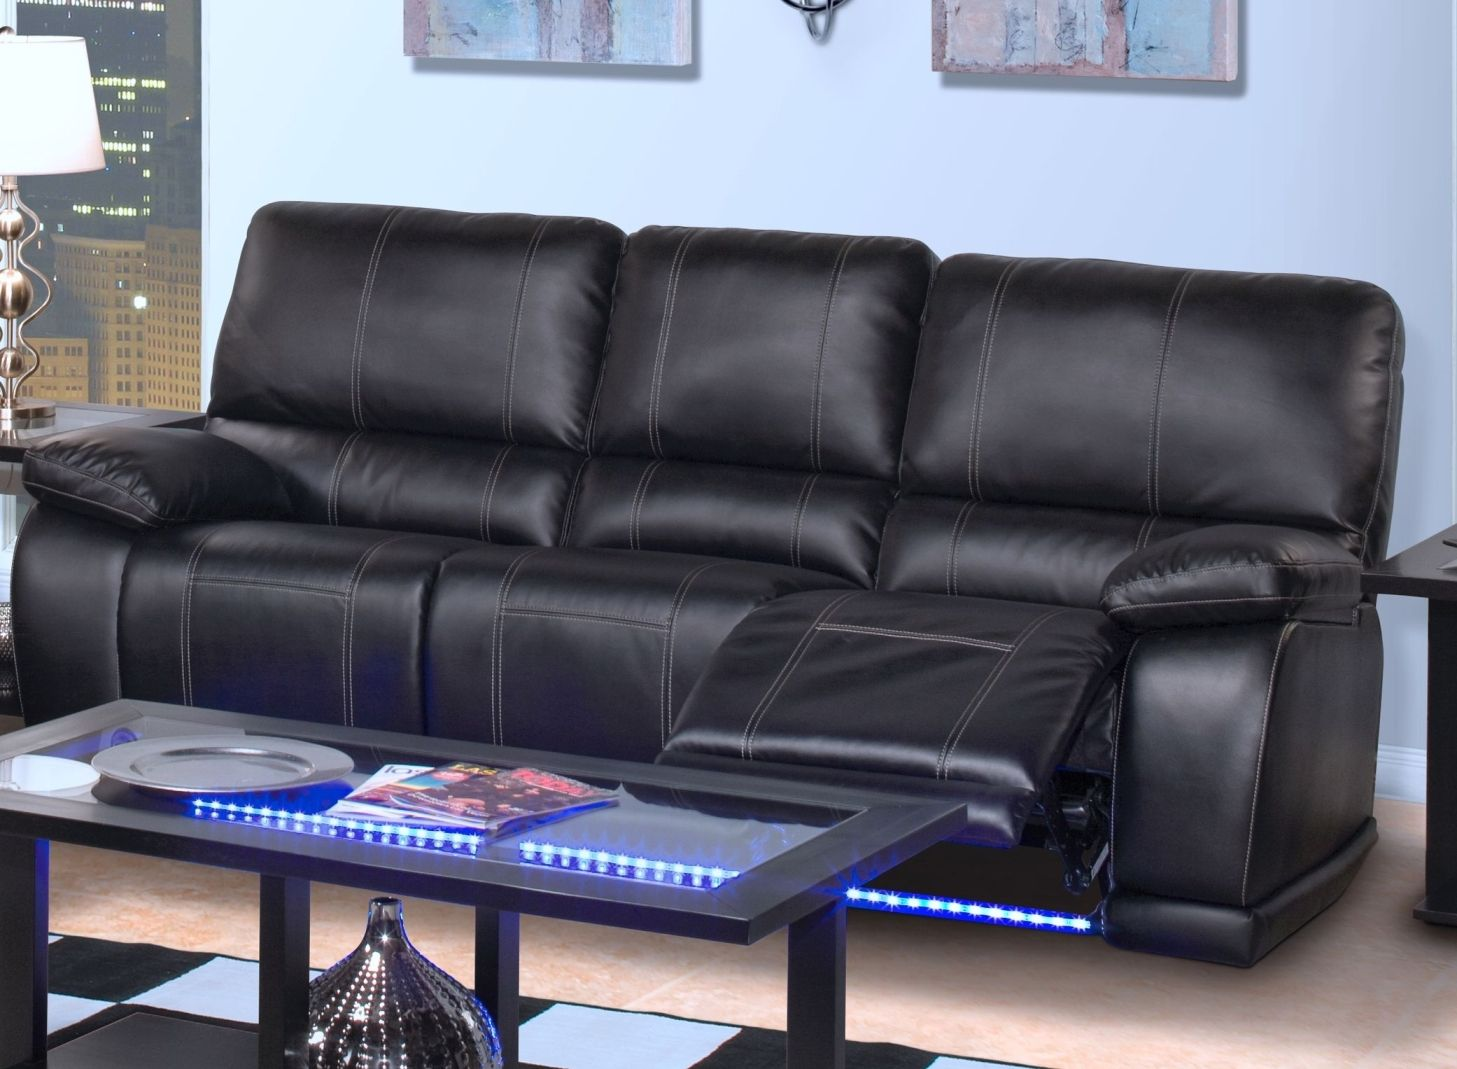 Outstanding Genuine Leather Sofas On Sale Beauty With Affordability Andrewgaddart Wooden Chair Designs For Living Room Andrewgaddartcom